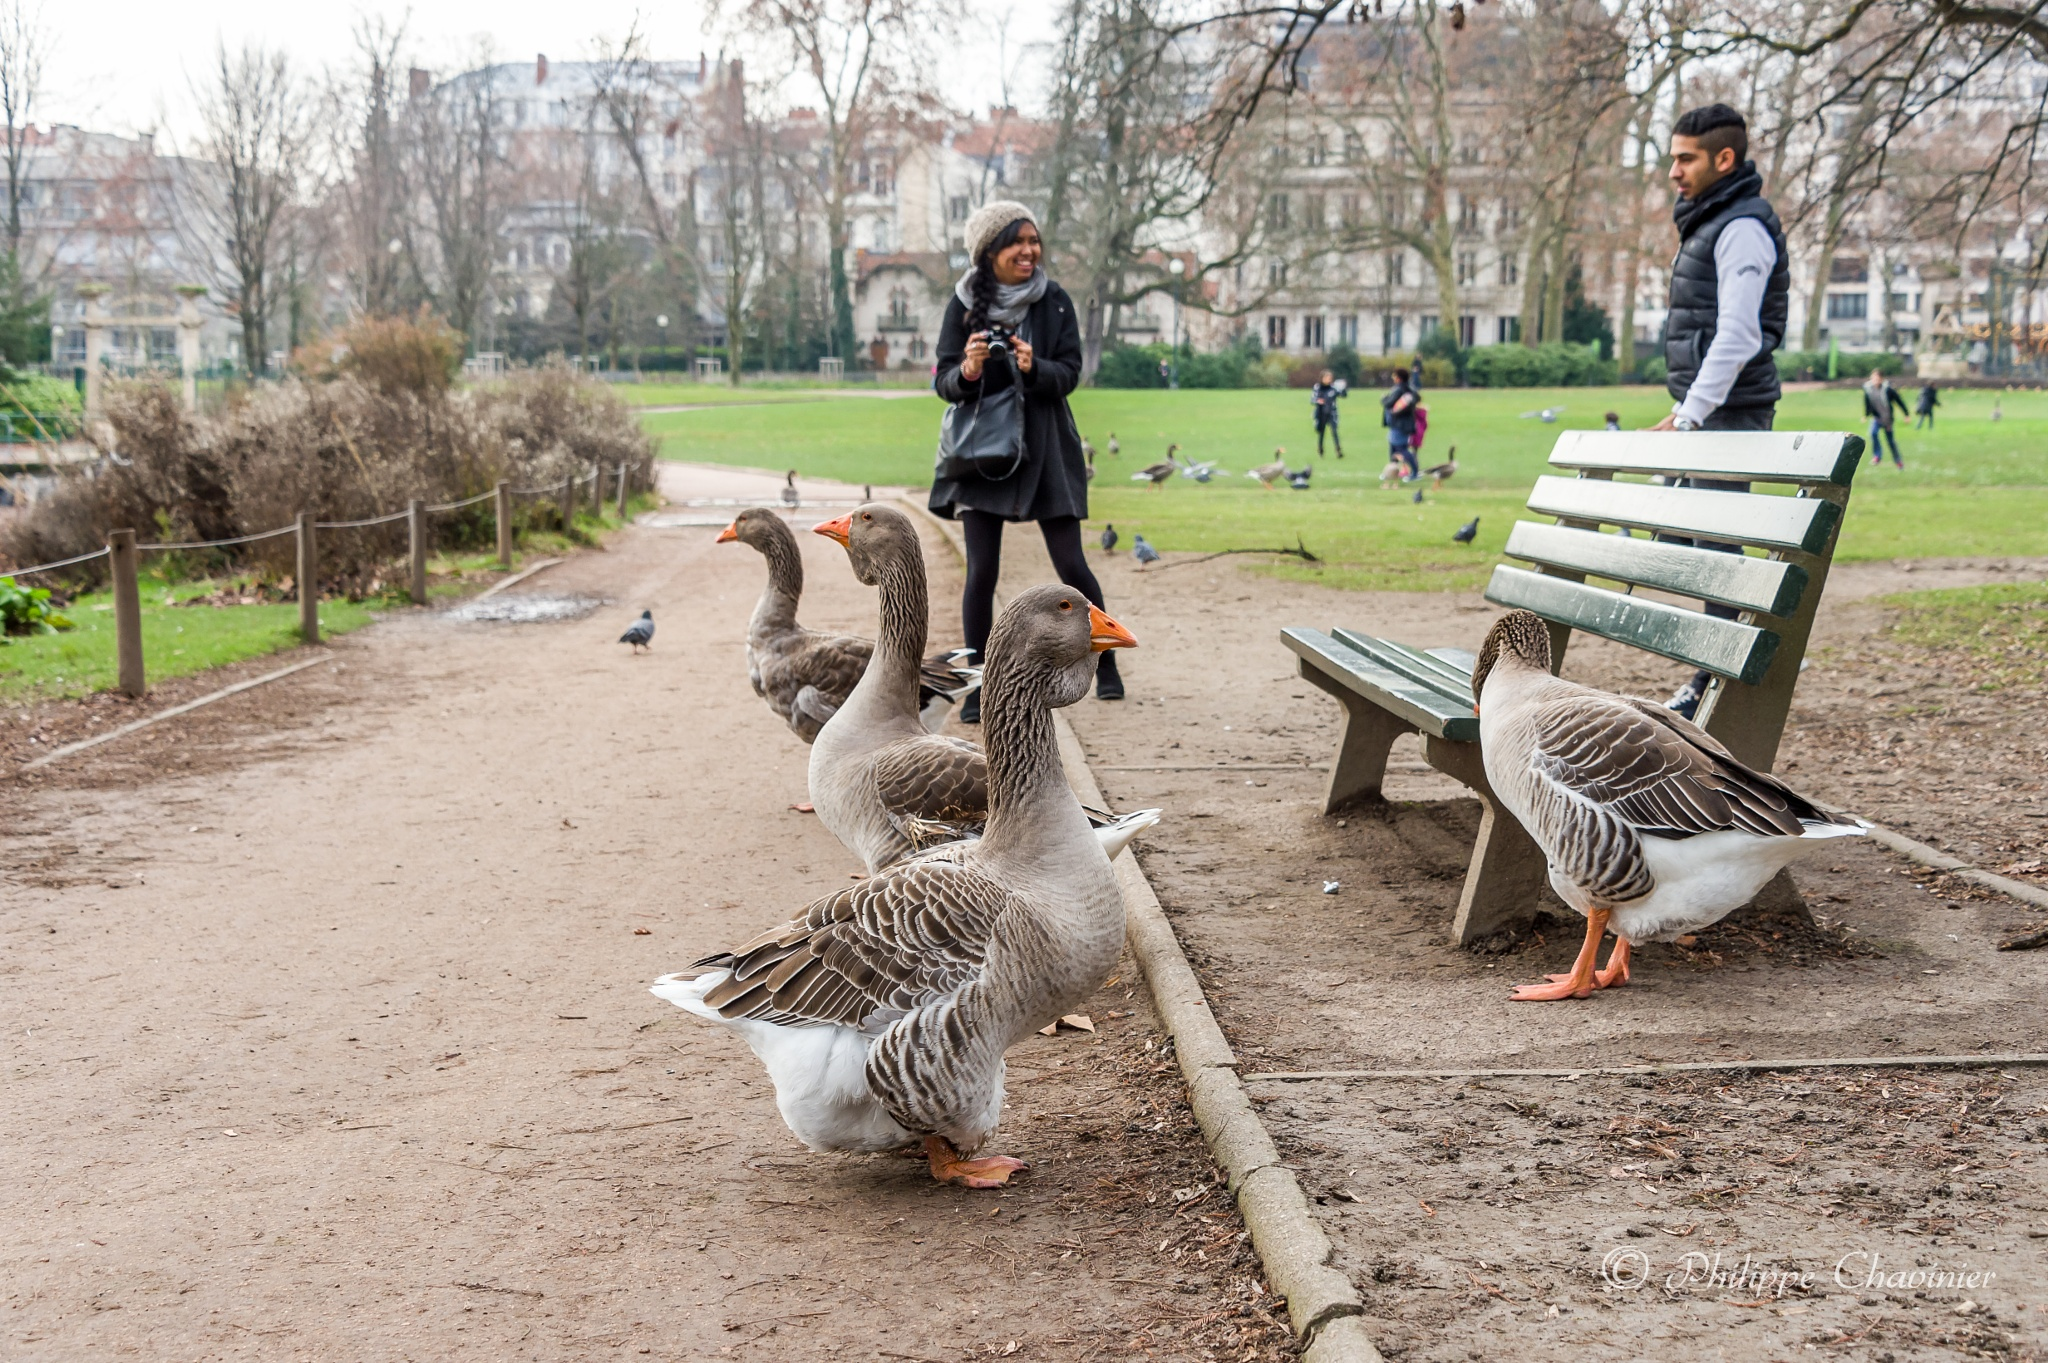 Geese alignment by Philippe Chavinier